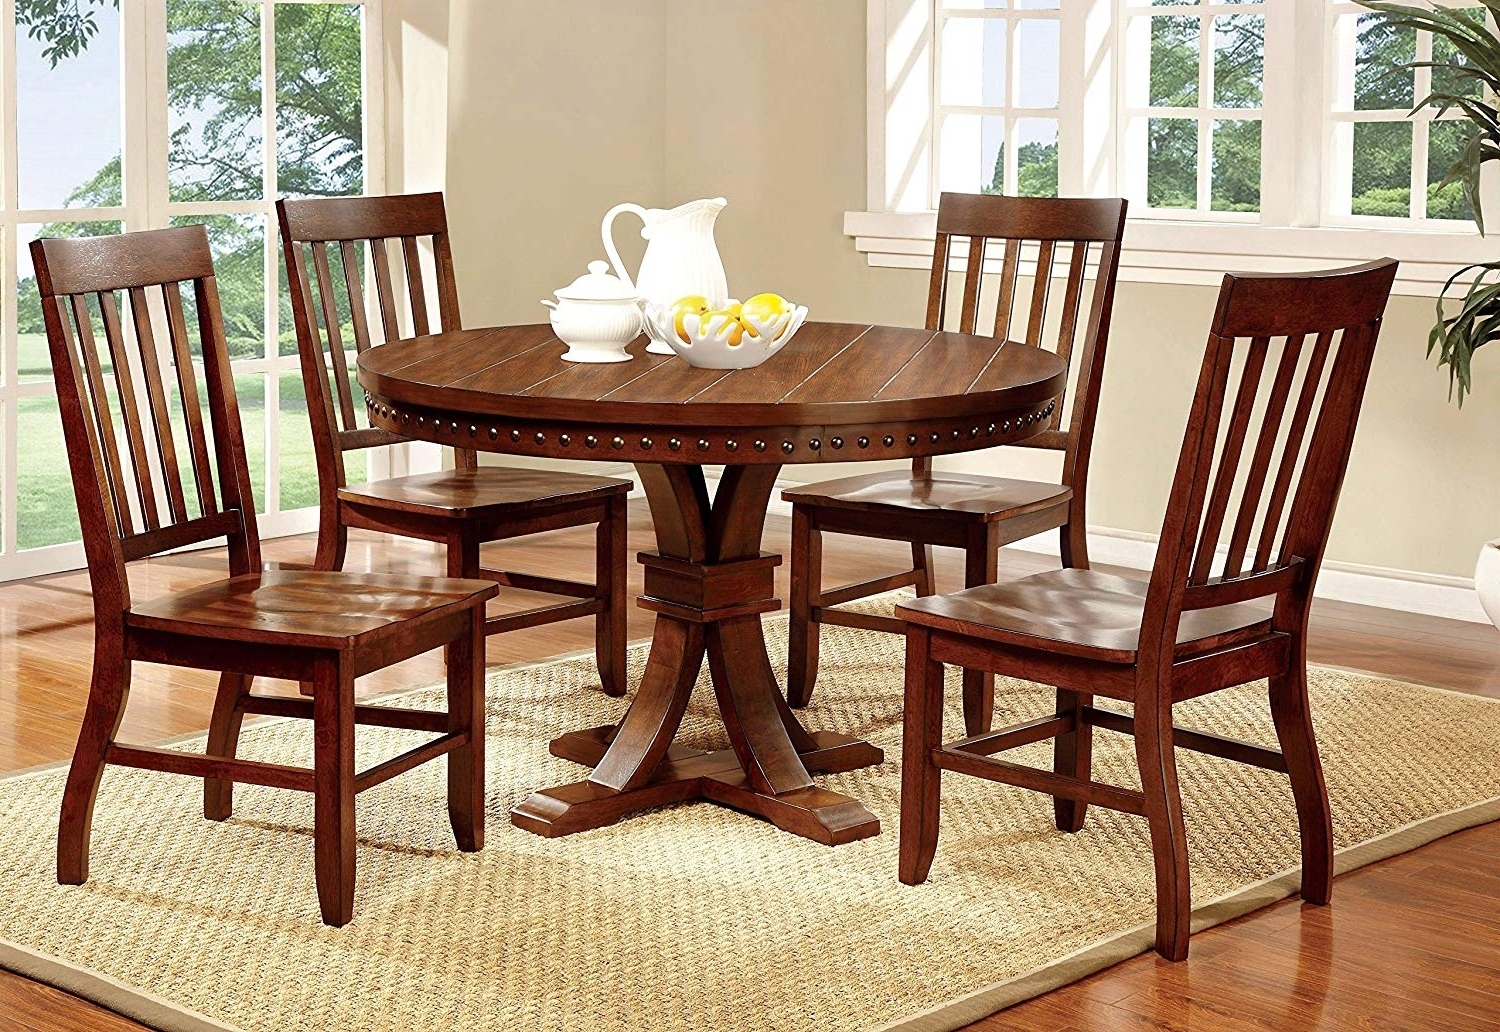 2017 Round Oak Dining Tables And Chairs Pertaining To Amazon – Furniture Of America Castile 5 Piece Transitional Round (View 5 of 25)